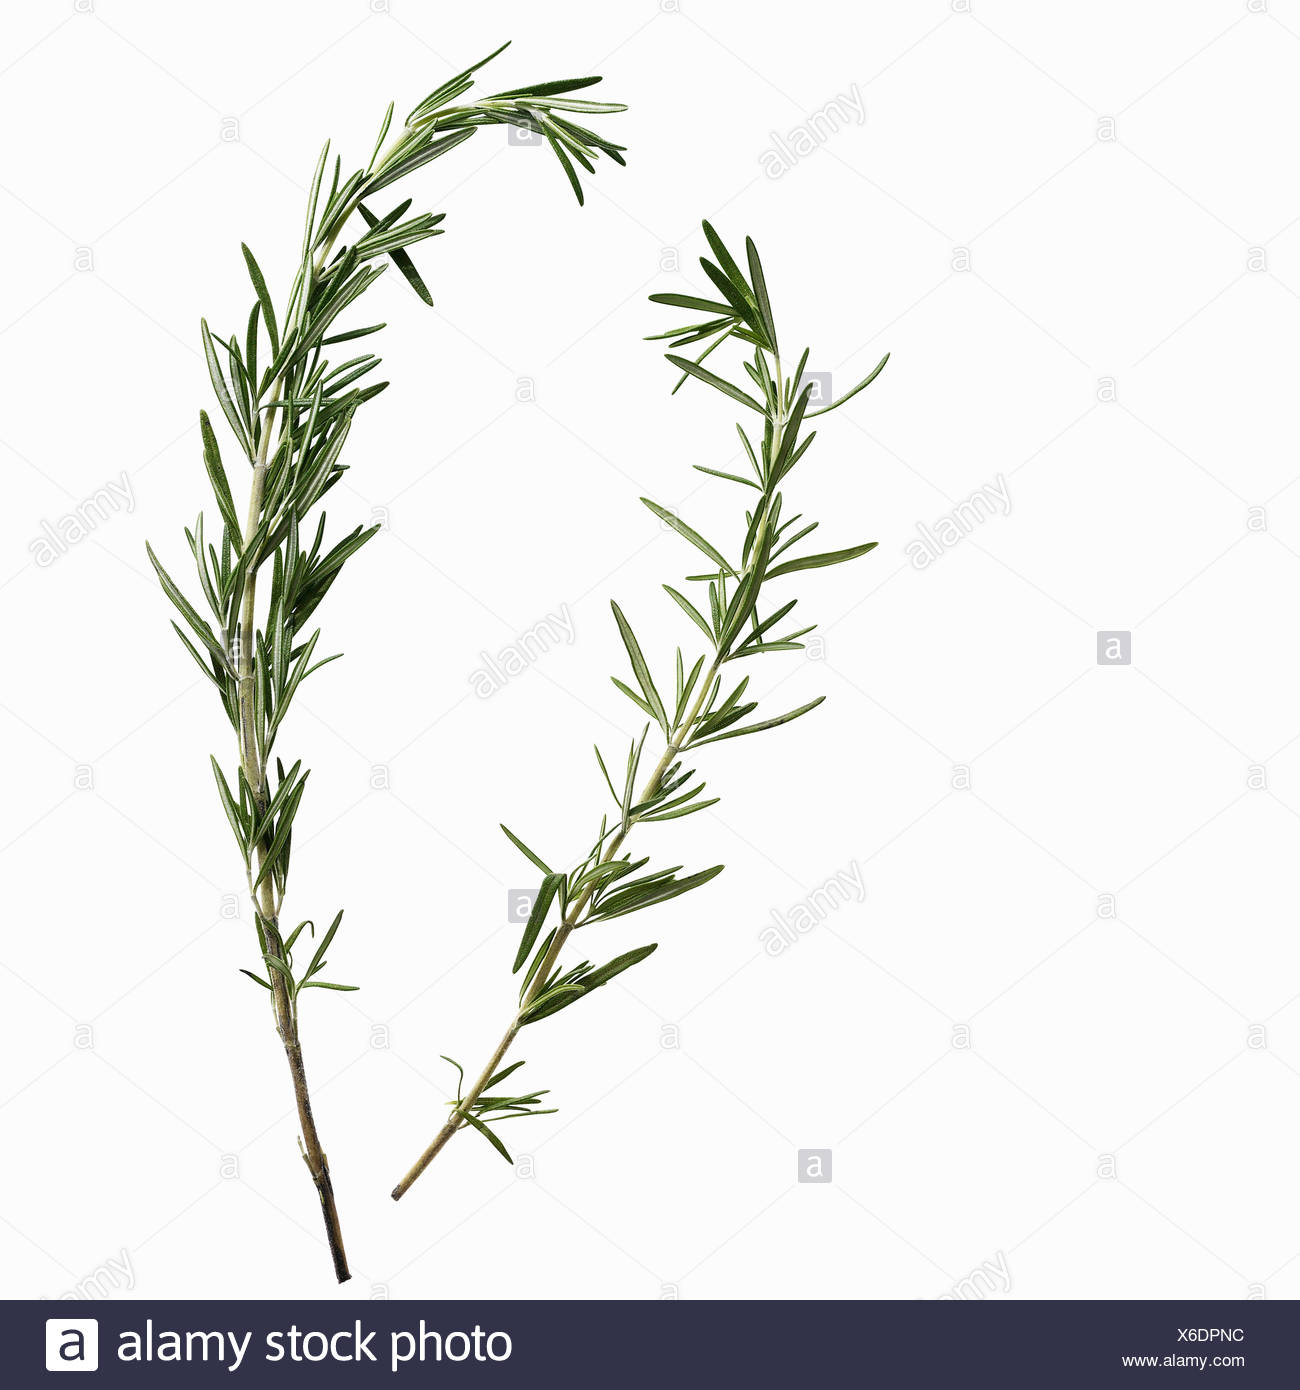 Close up of sprigs of herbs - Stock Image